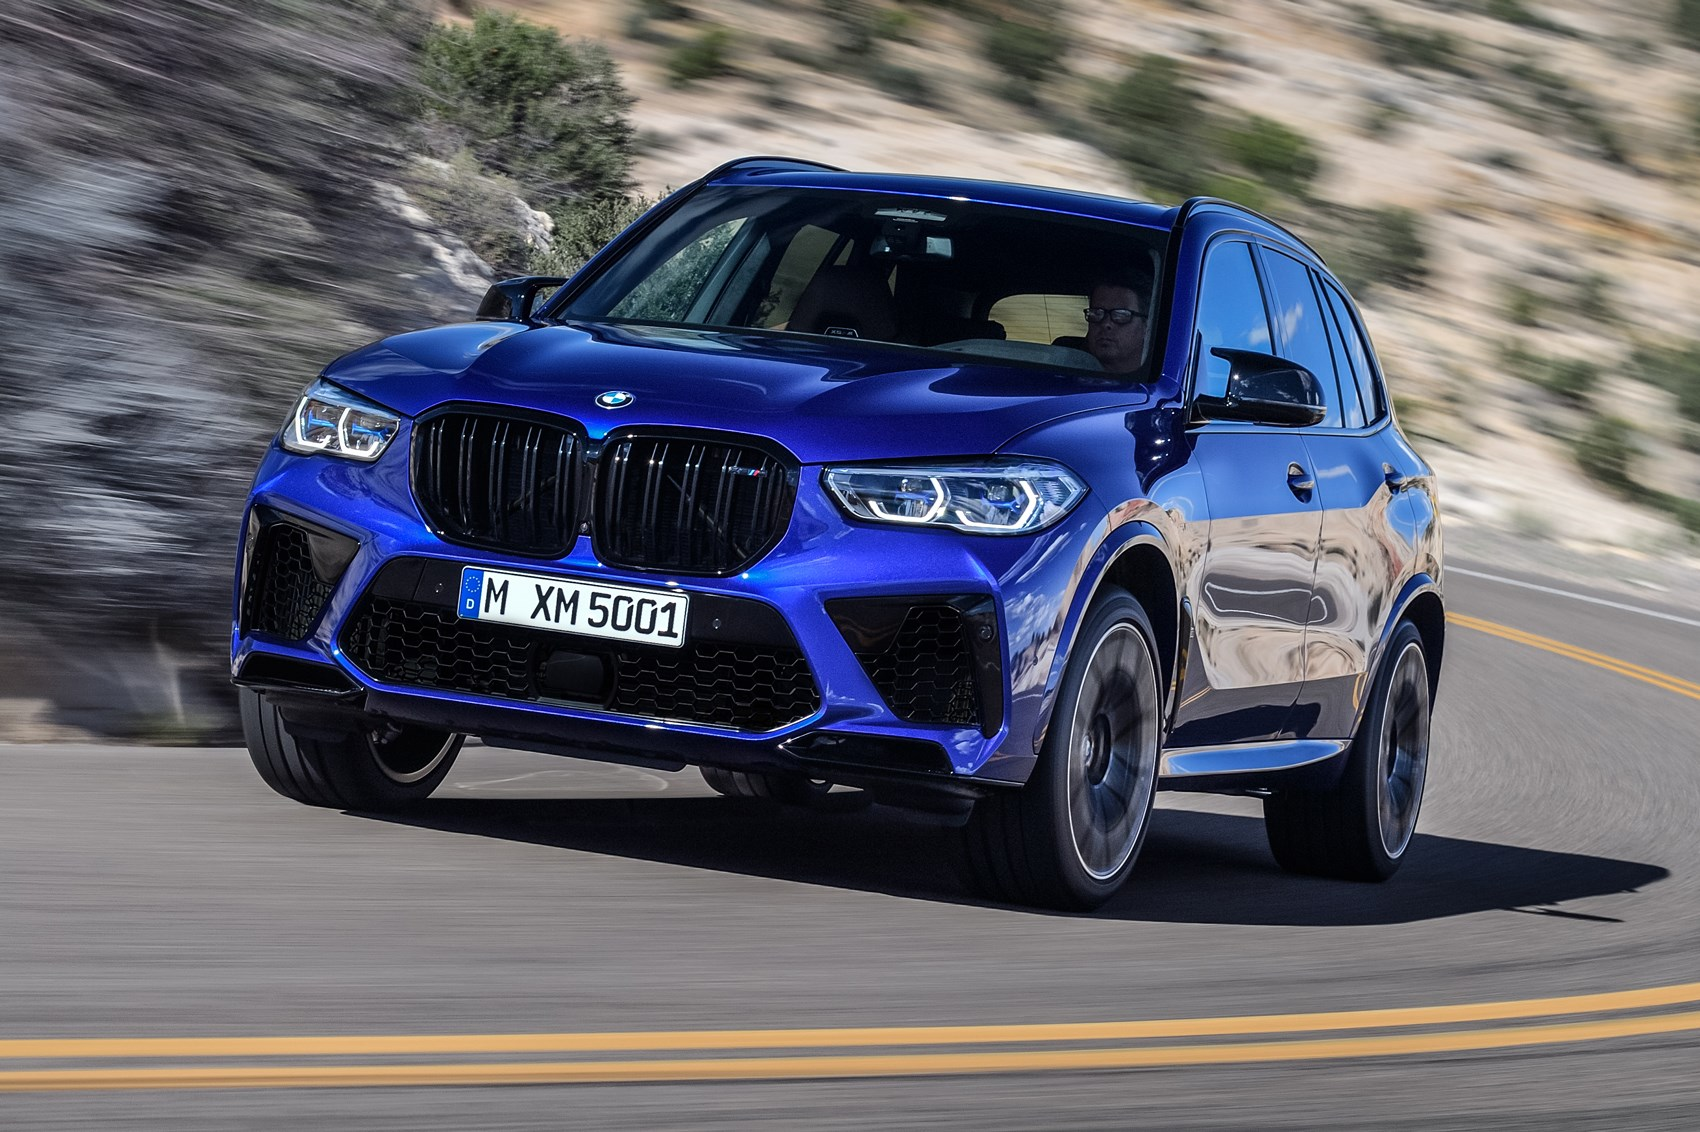 Bmw X5 M Competition 2020 Review Greyhound Meets Bus Car Magazine